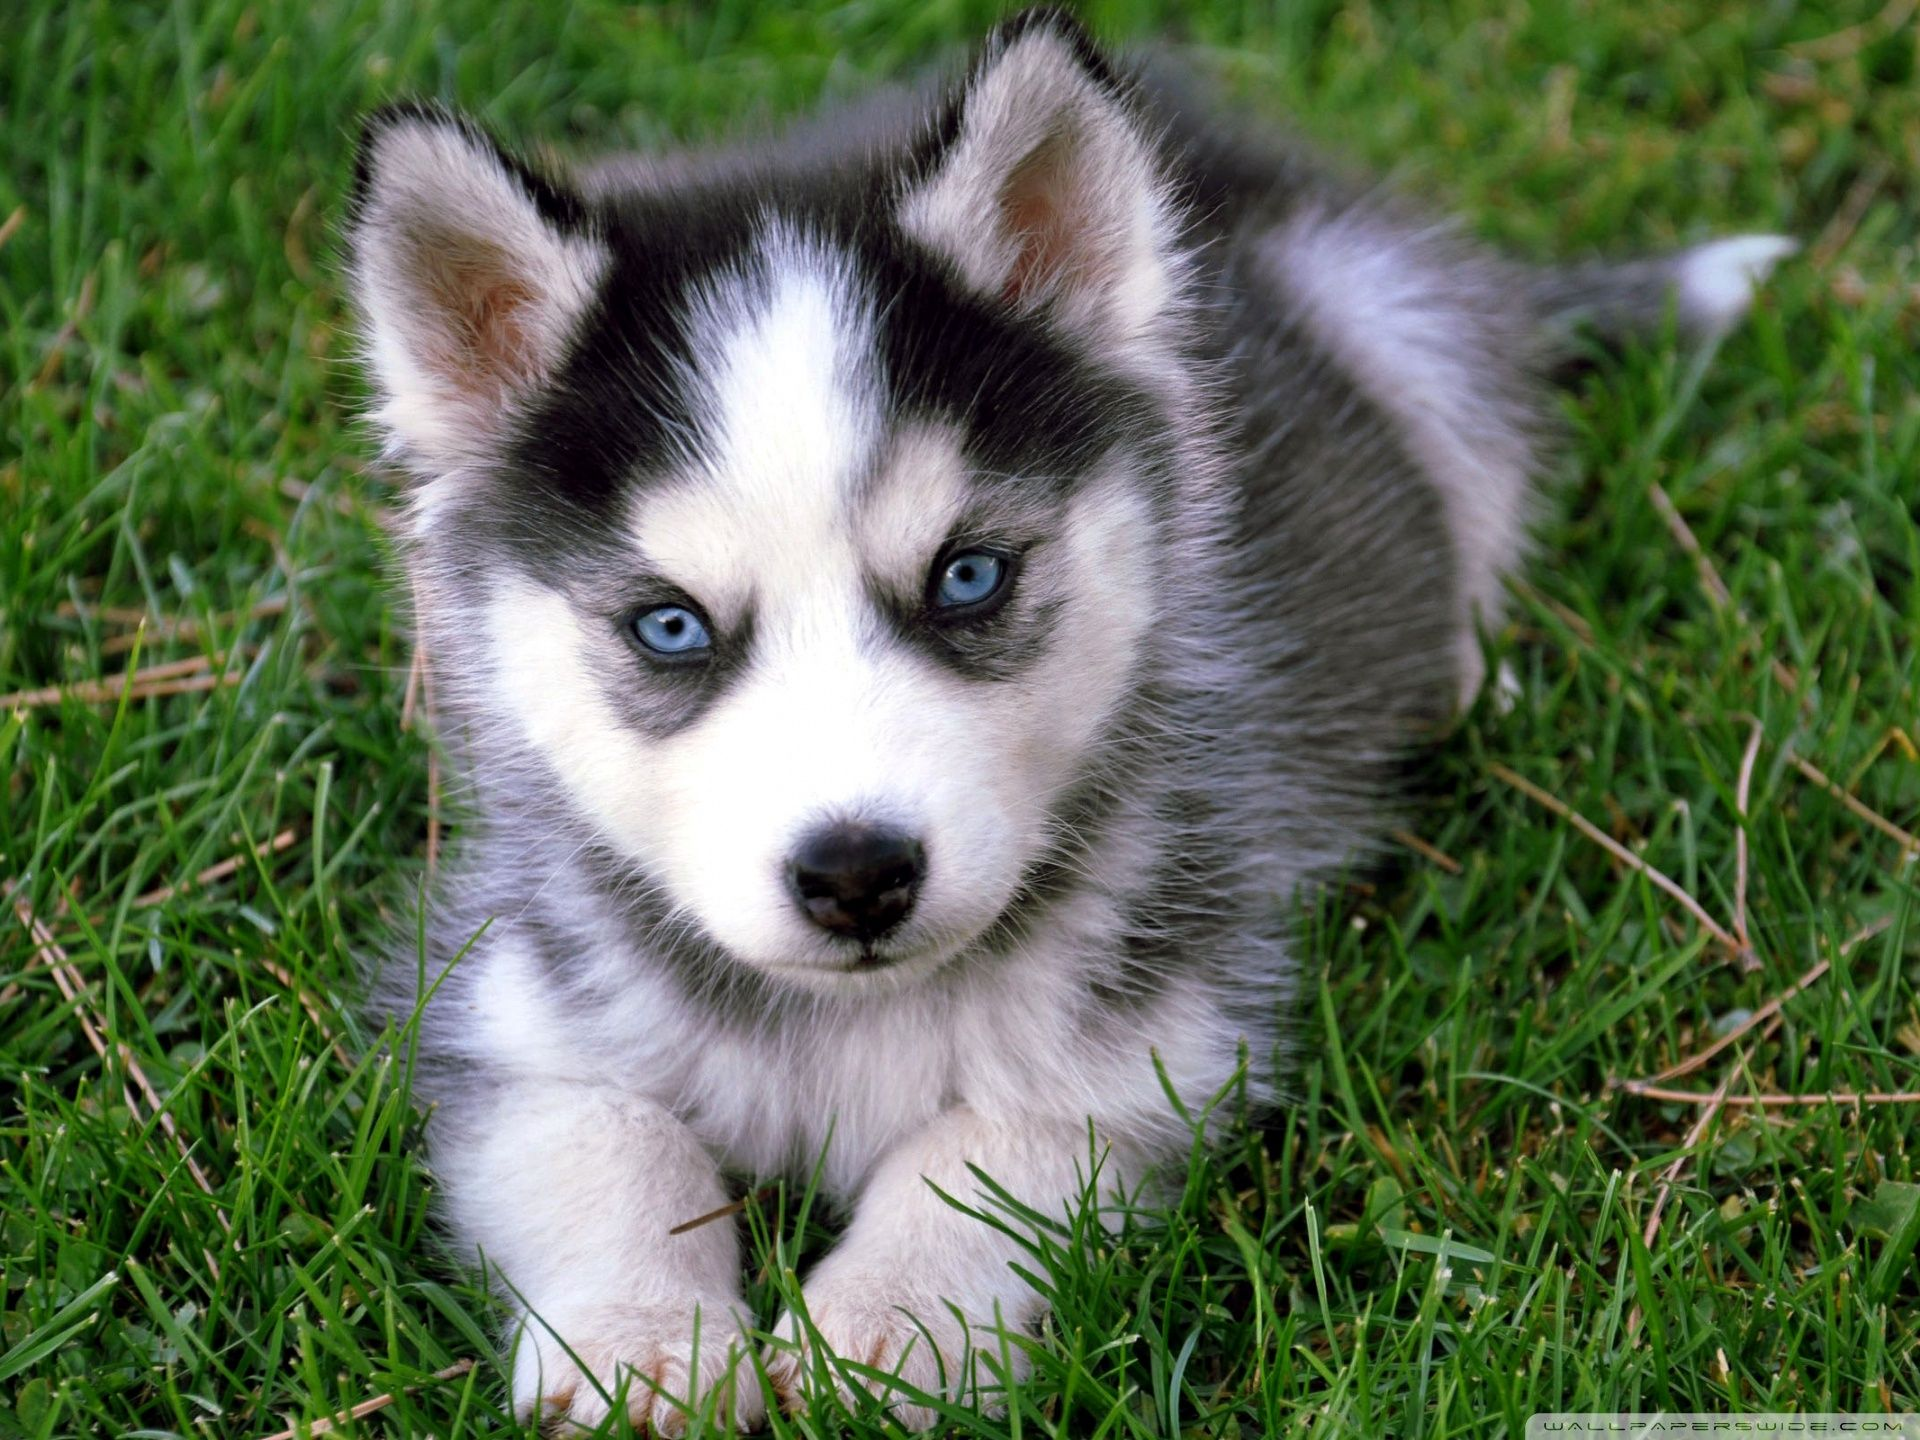 Puppy Wallpaper Hd Posted By Zoey Simpson